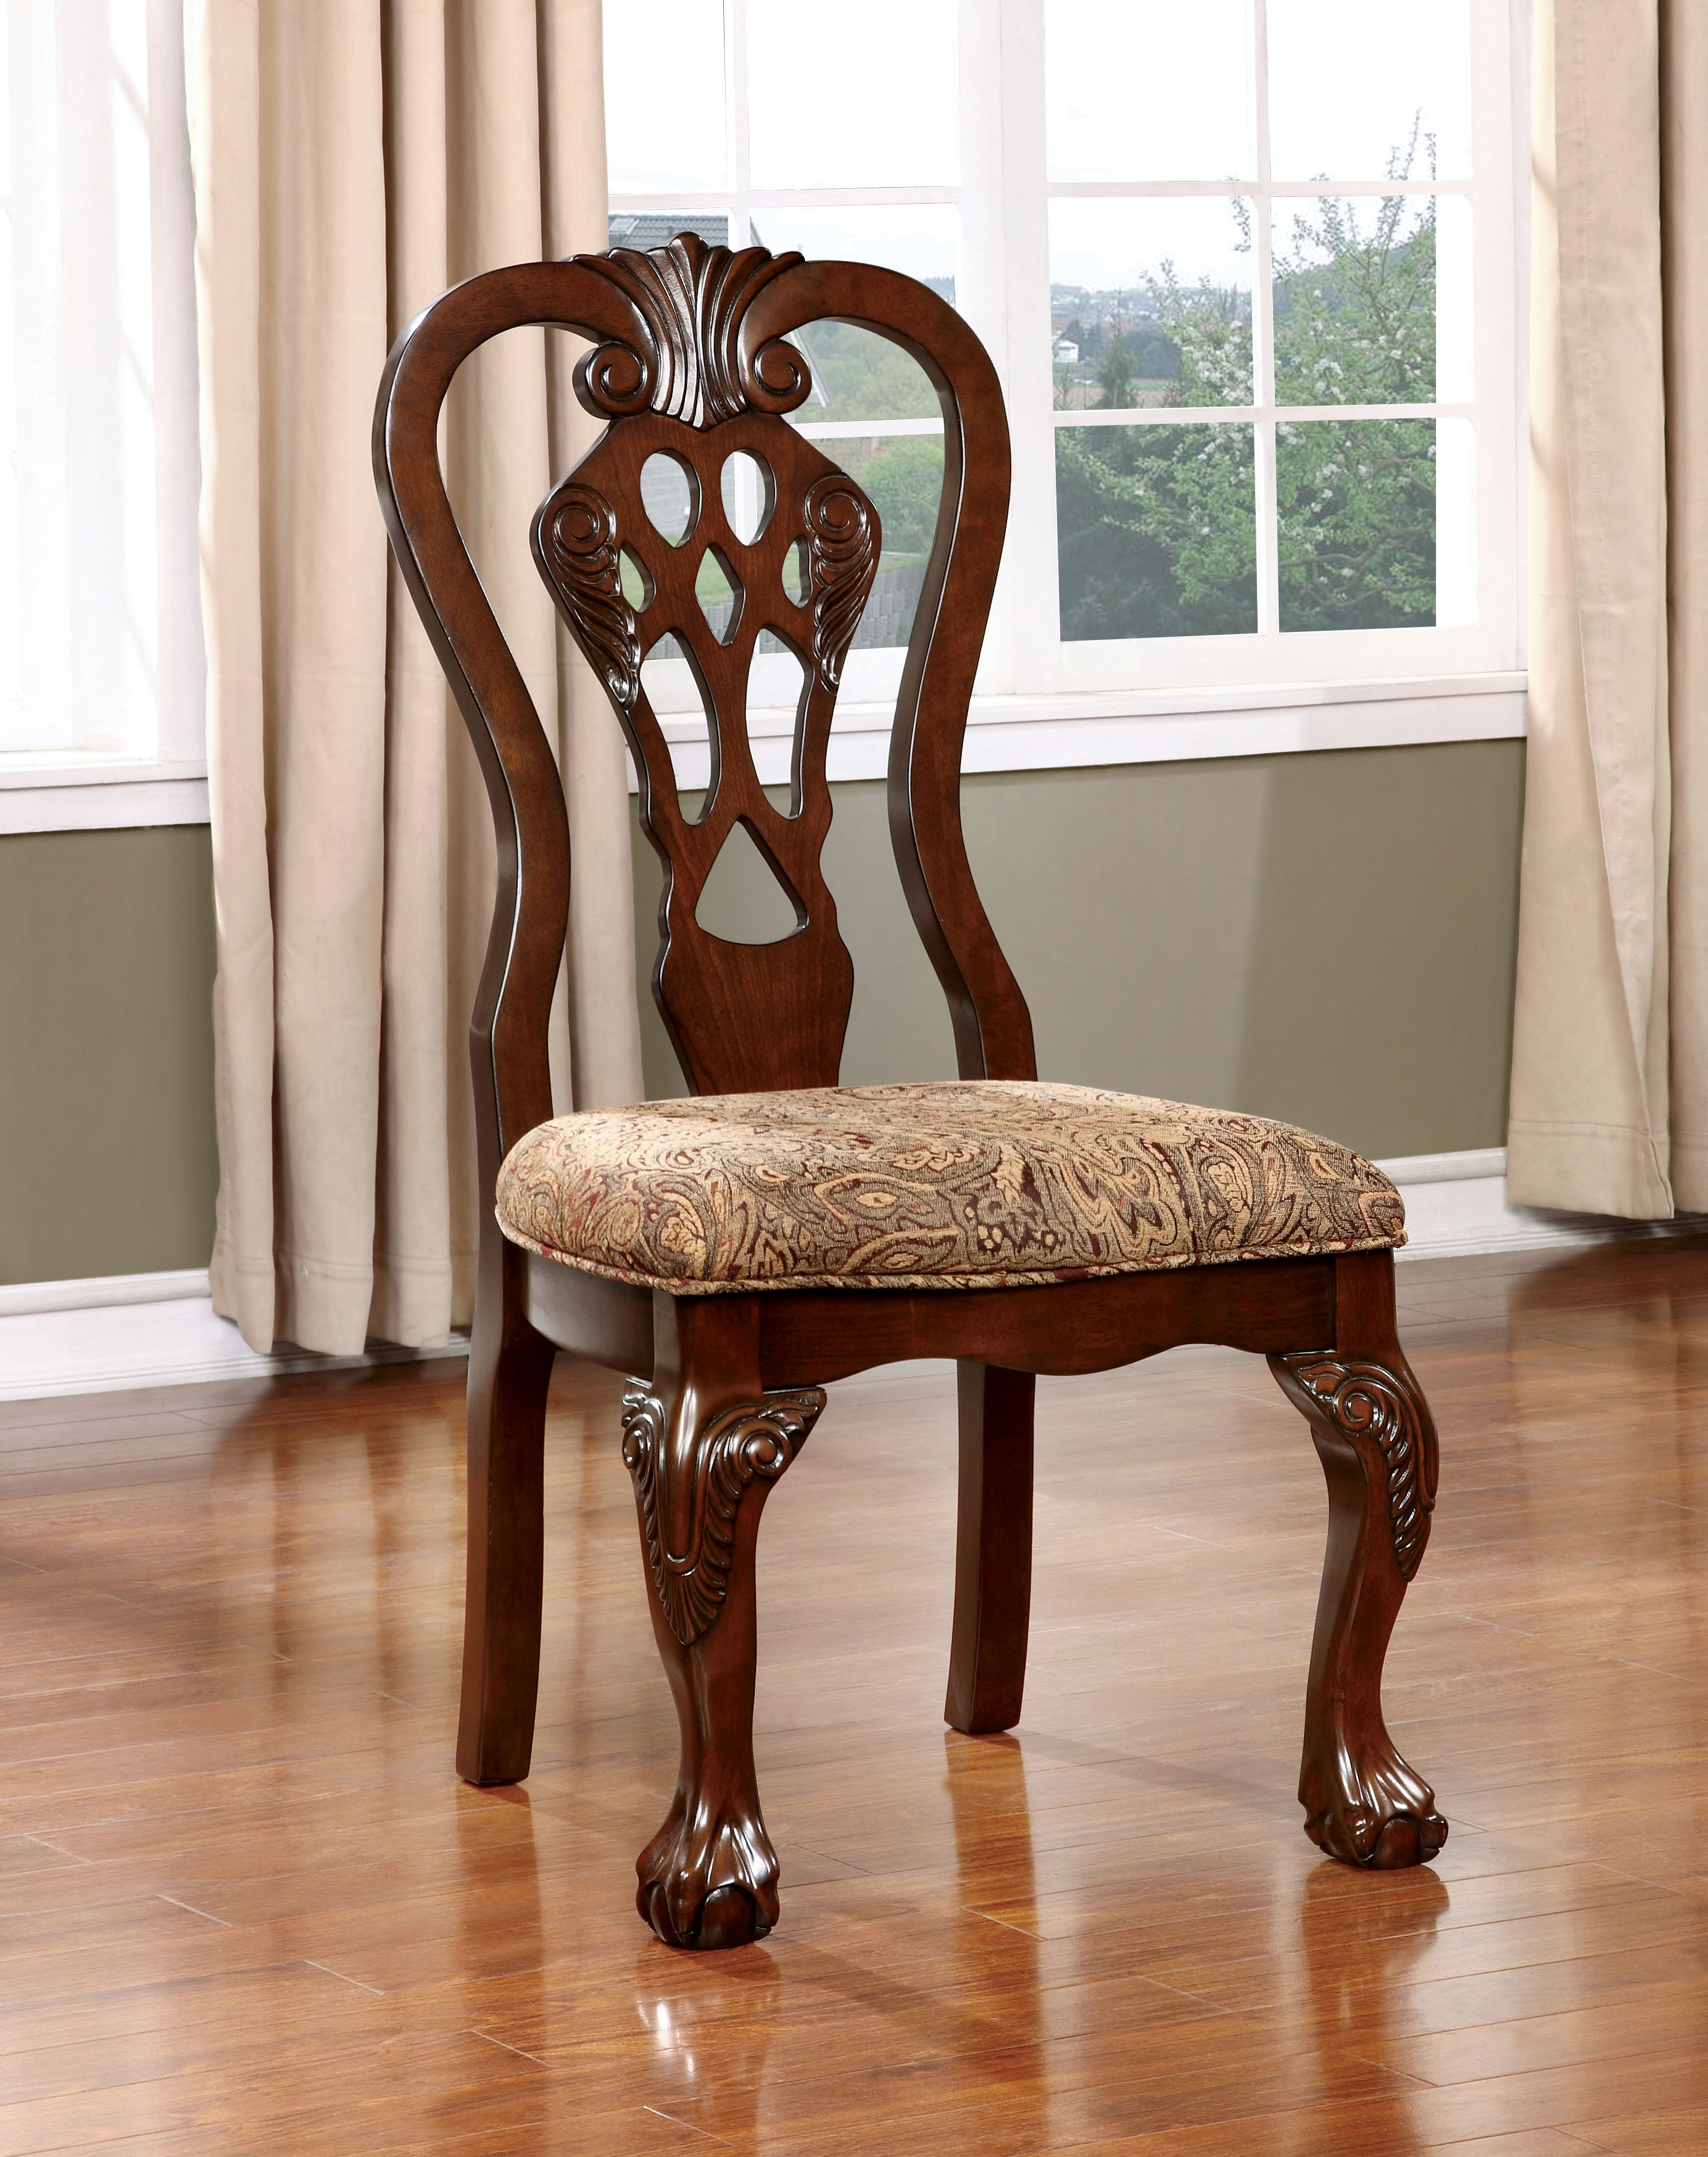 Furniture of America Madeline Fabric Upholstered Side Chair (Set of 2), Brown-SJEG-5434TD